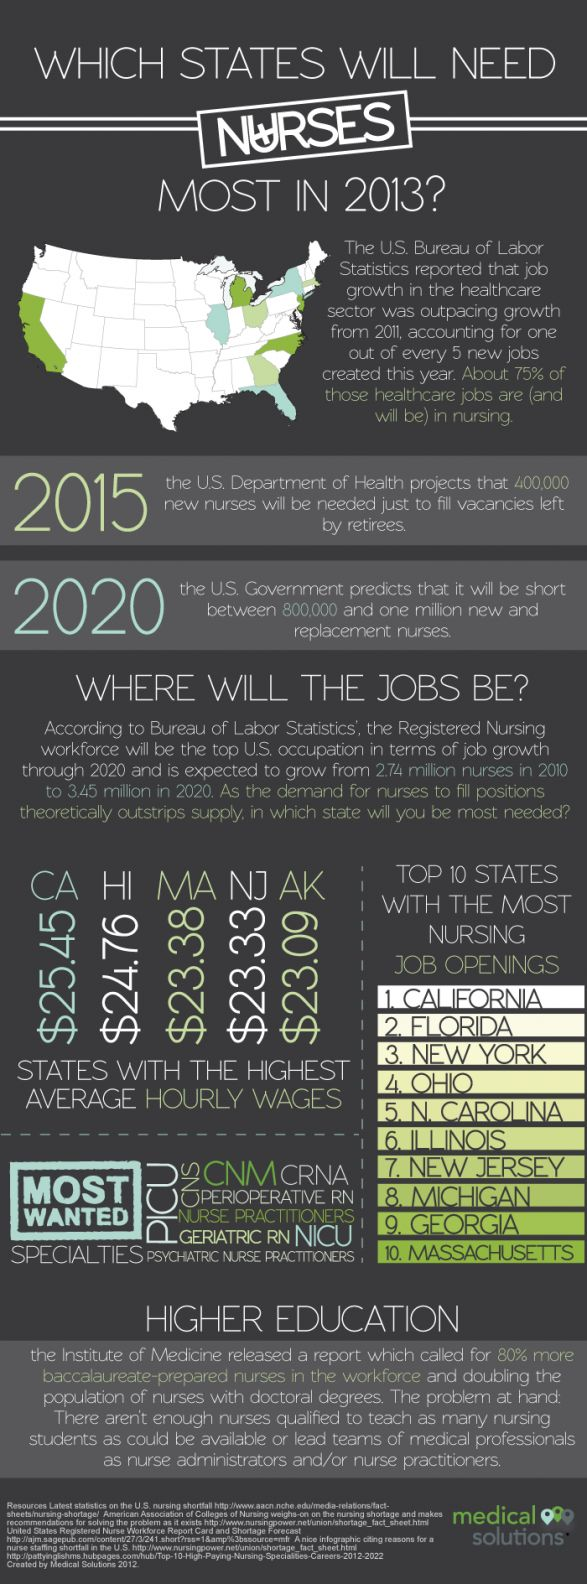 Looks like moving to florida just might work...2013 NURSING JOB PROJECTIONS